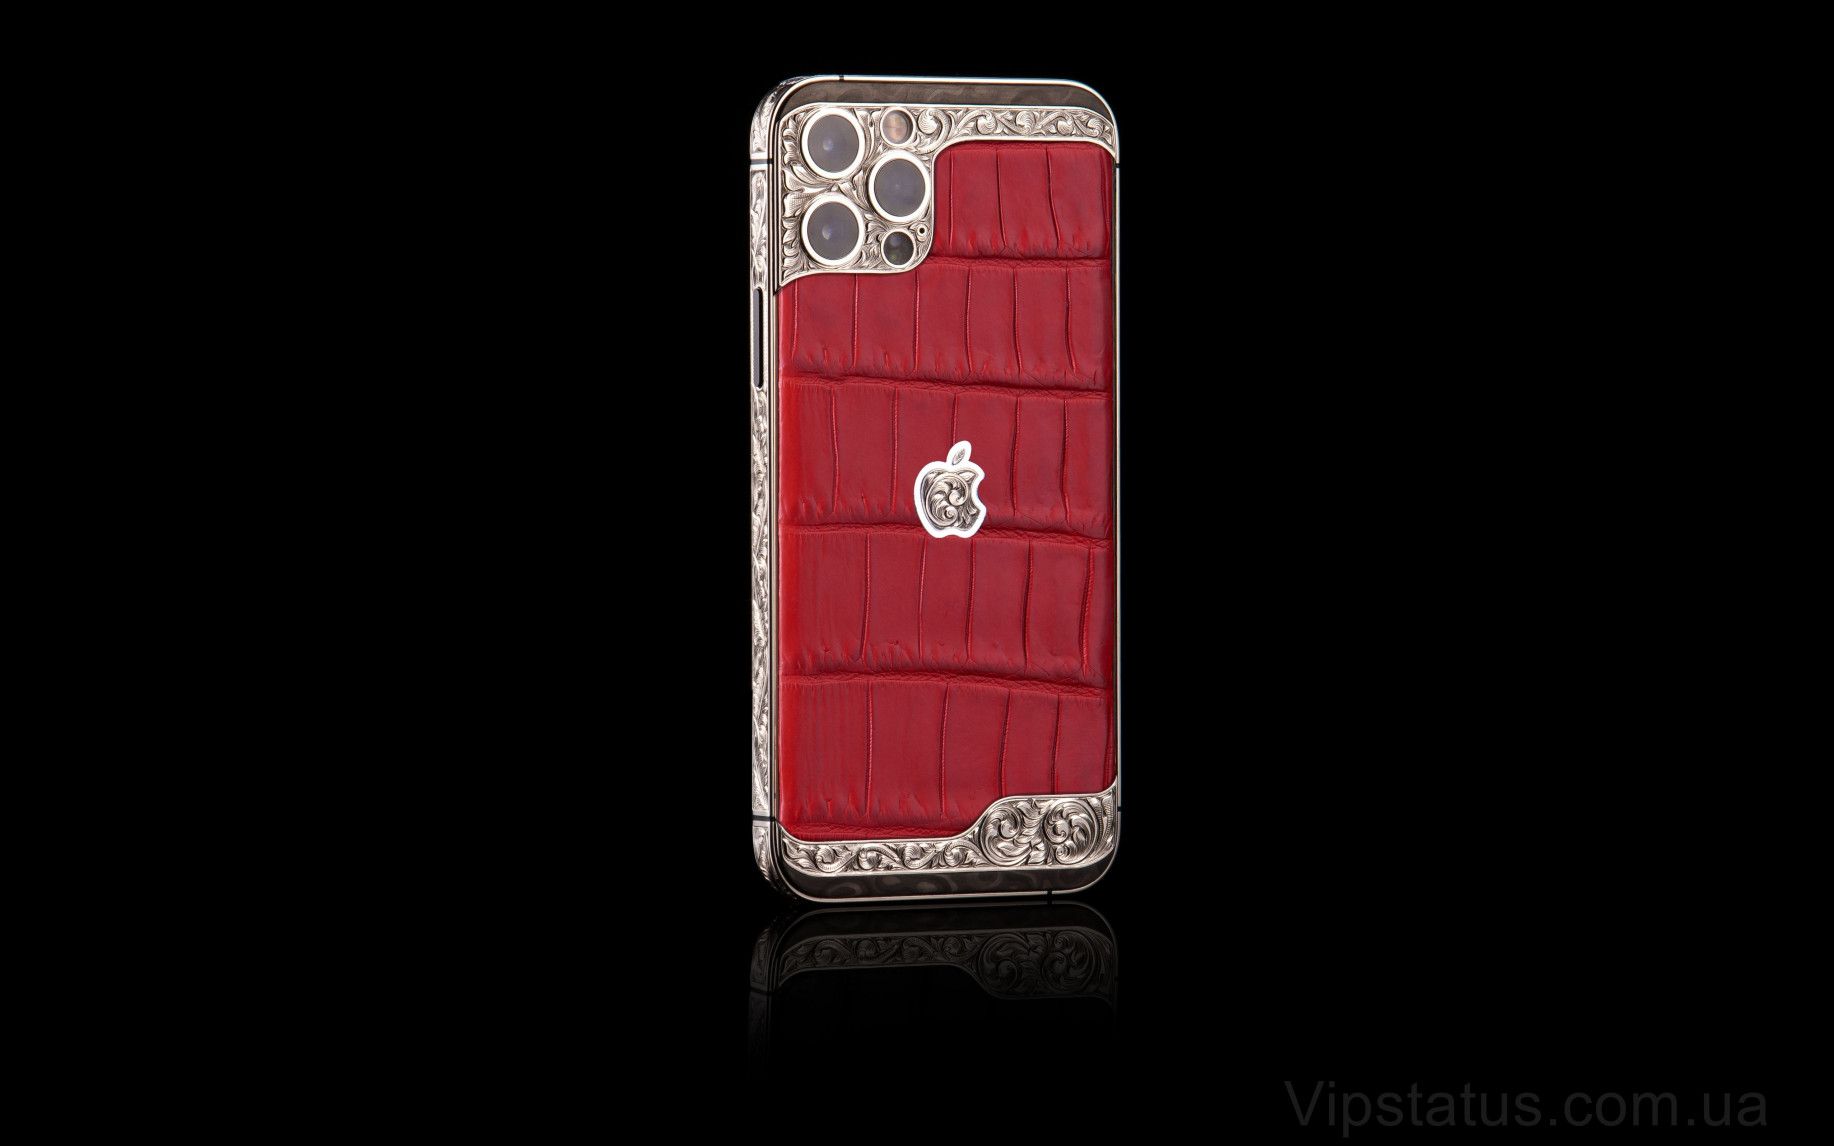 Elite Red Queen Edition IPHONE 12 PRO MAX 512 GB Red Queen Edition IPHONE 12 PRO MAX 512 GB image 5